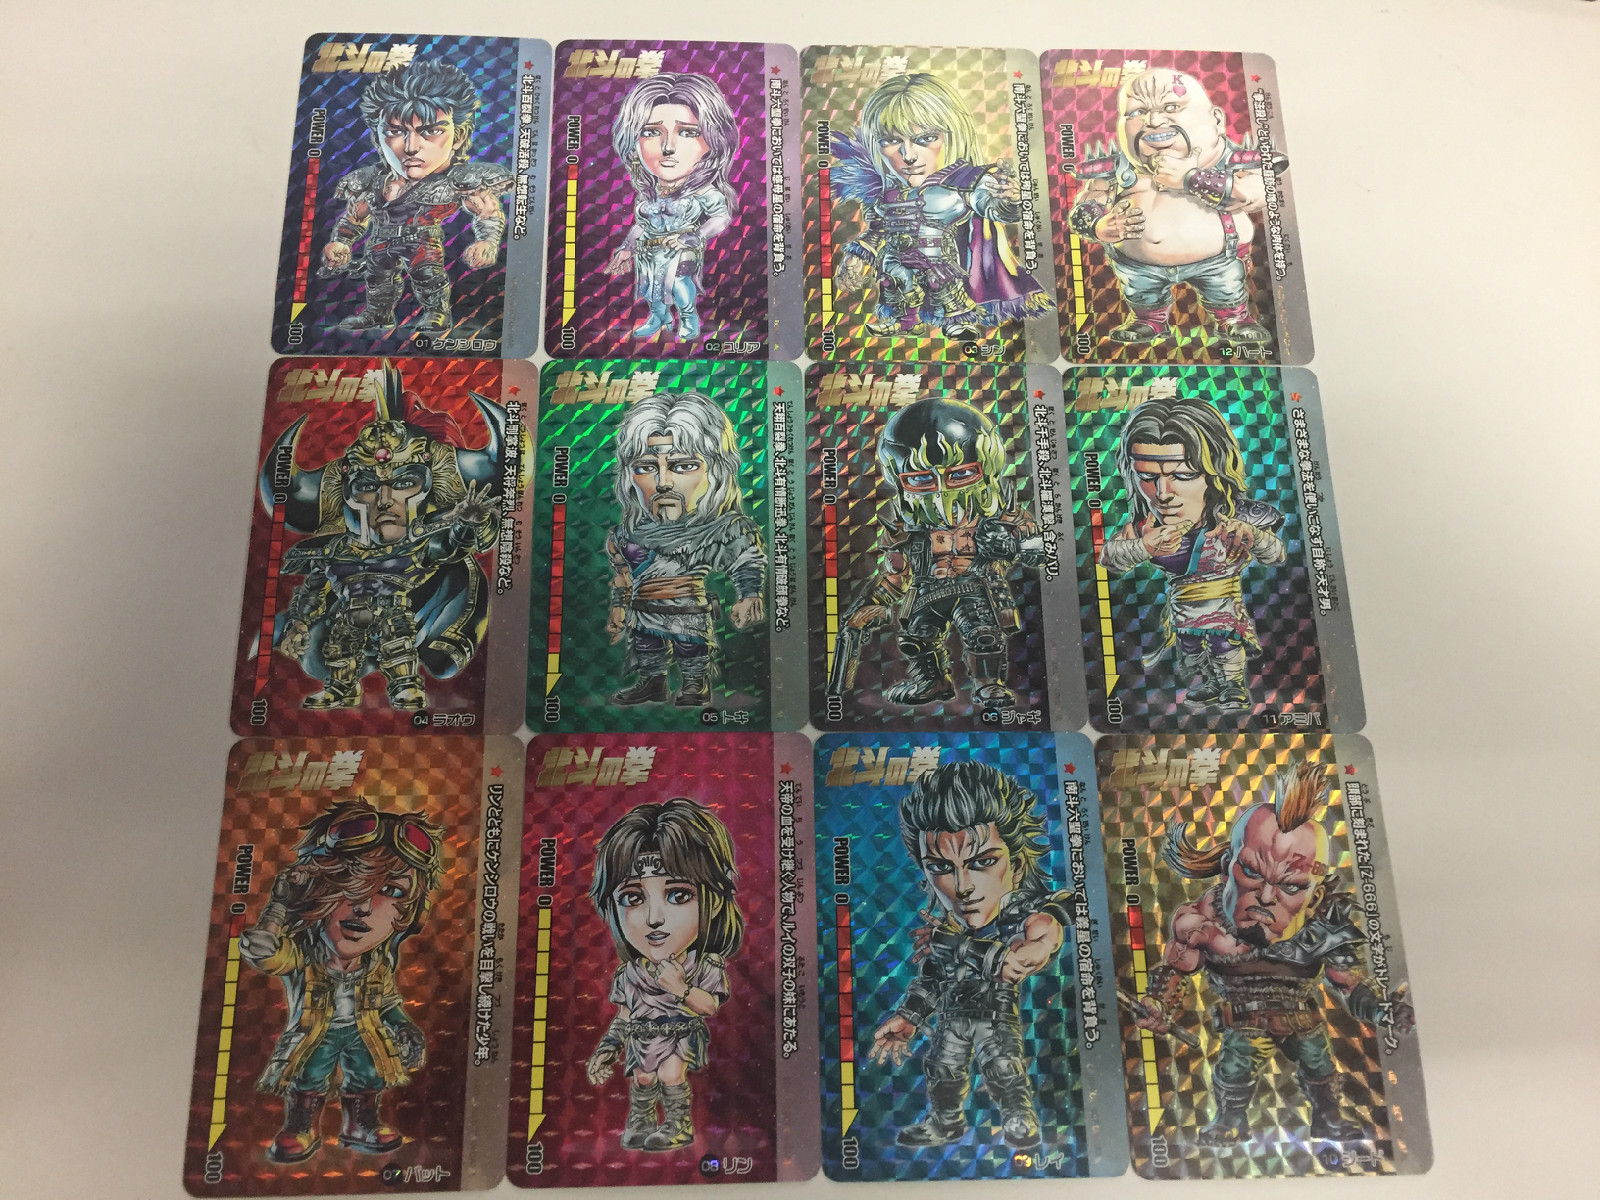 12pcs/set Fist Of The North Star Toys Hobbies Hobby Collectibles Game Collection Anime Cards